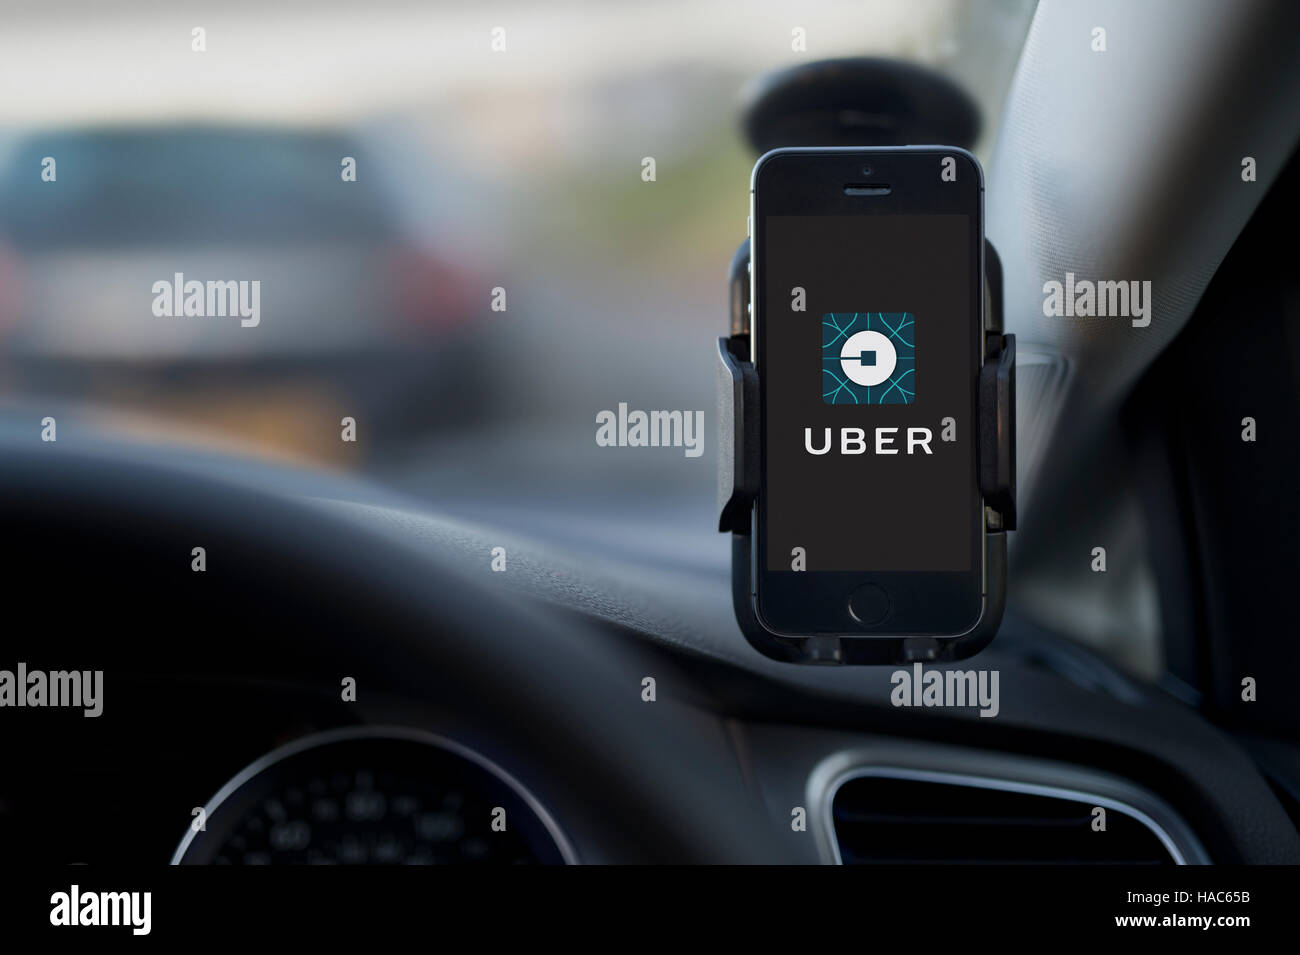 The interior of an Uber taxi with an iPhone fixed to the car's windscreen featuring the company logo. - Stock Image